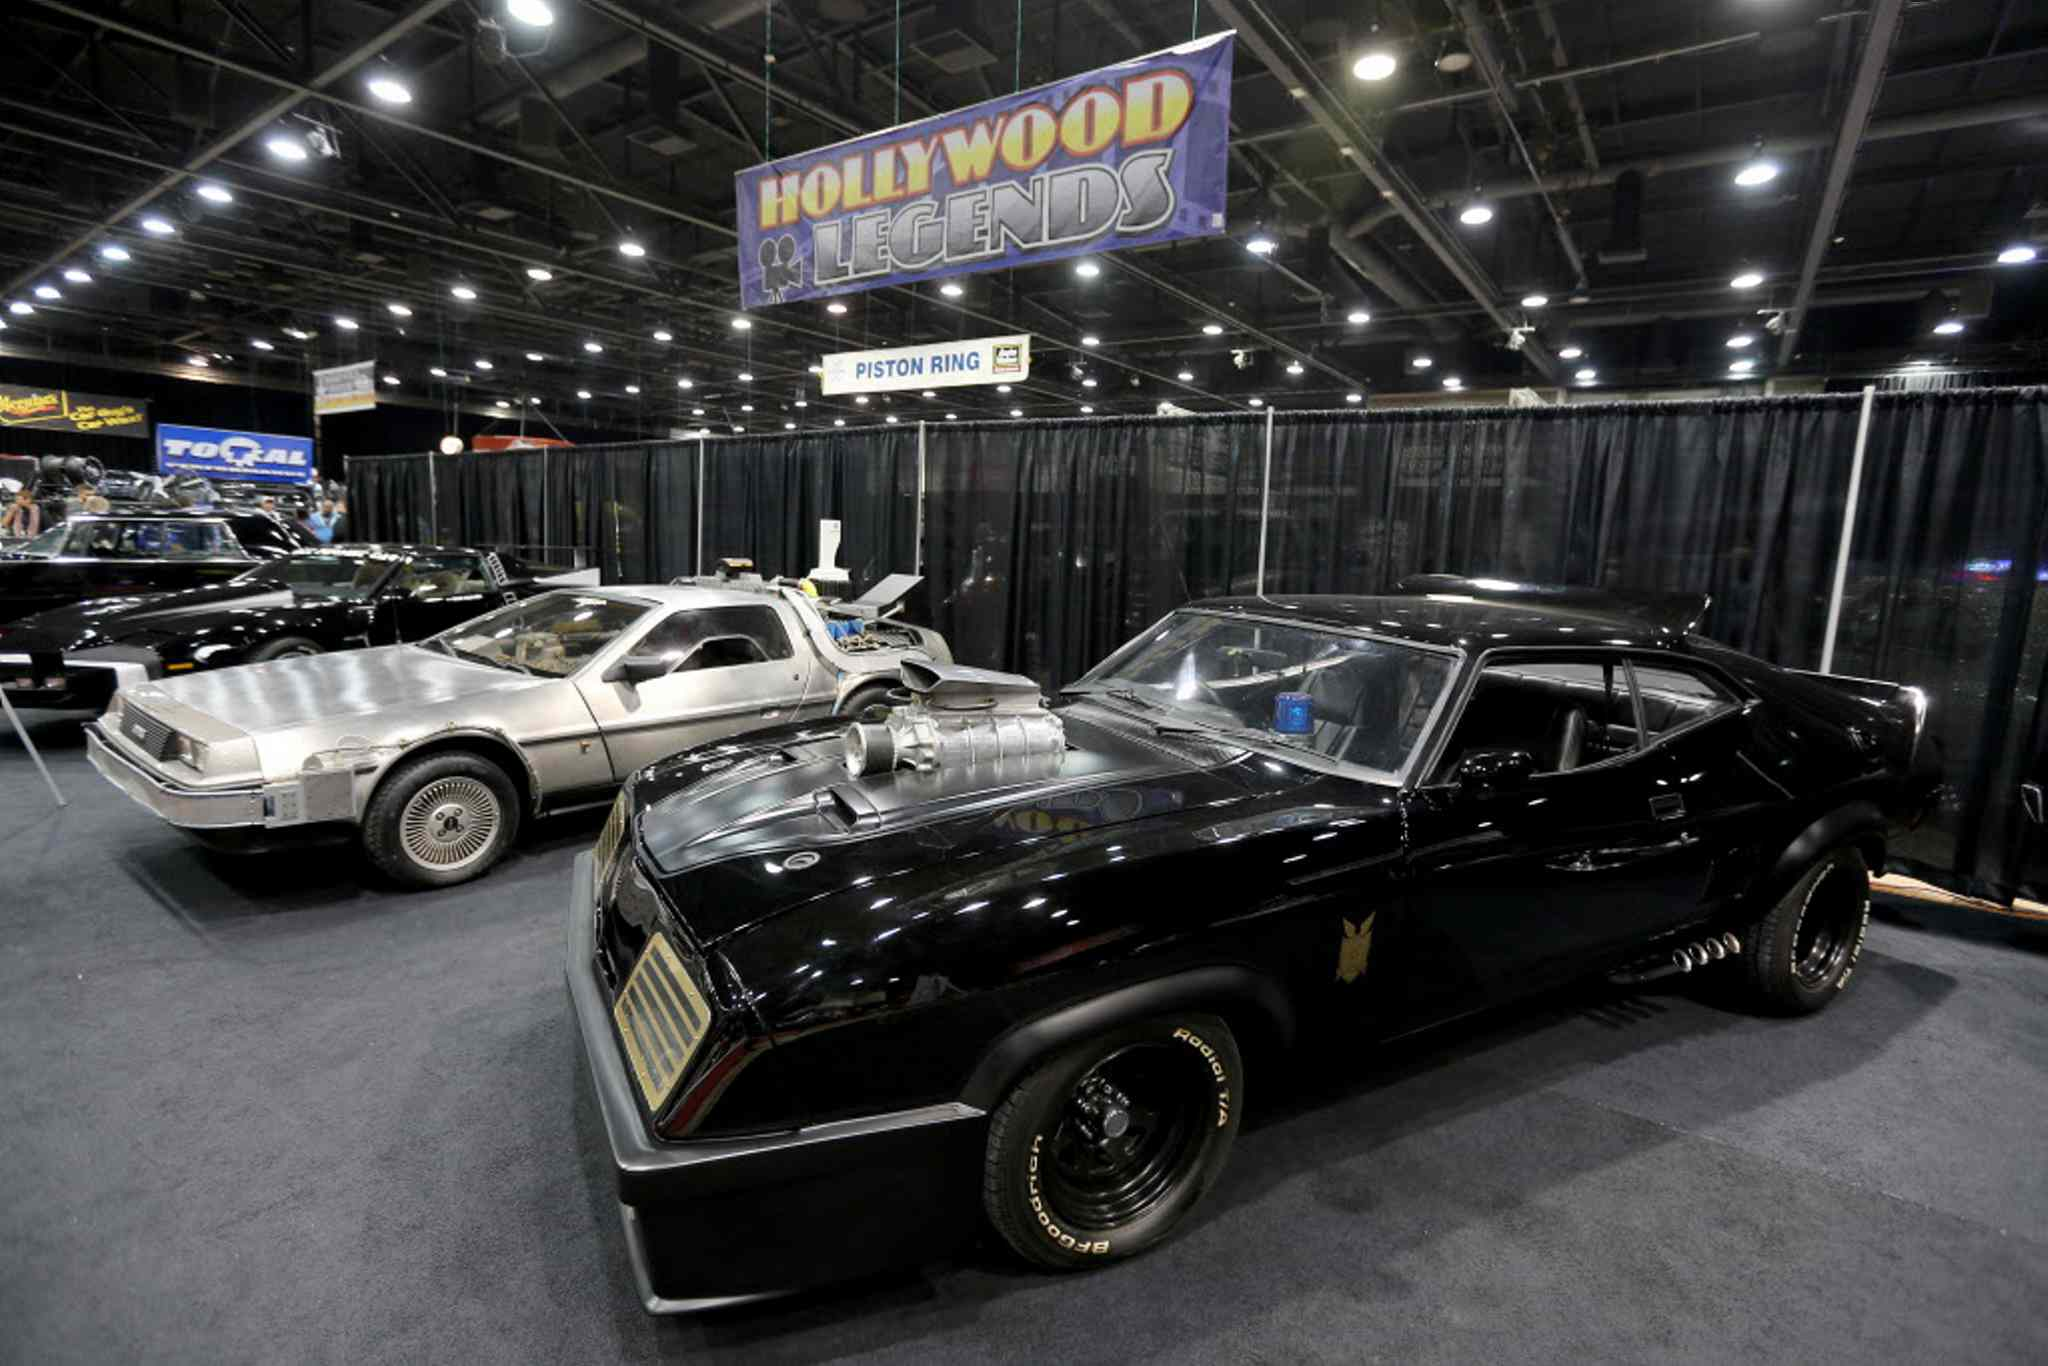 A Delorean from the Back to the Future movie series alongside a Ford Falcon from the Mad Max series.